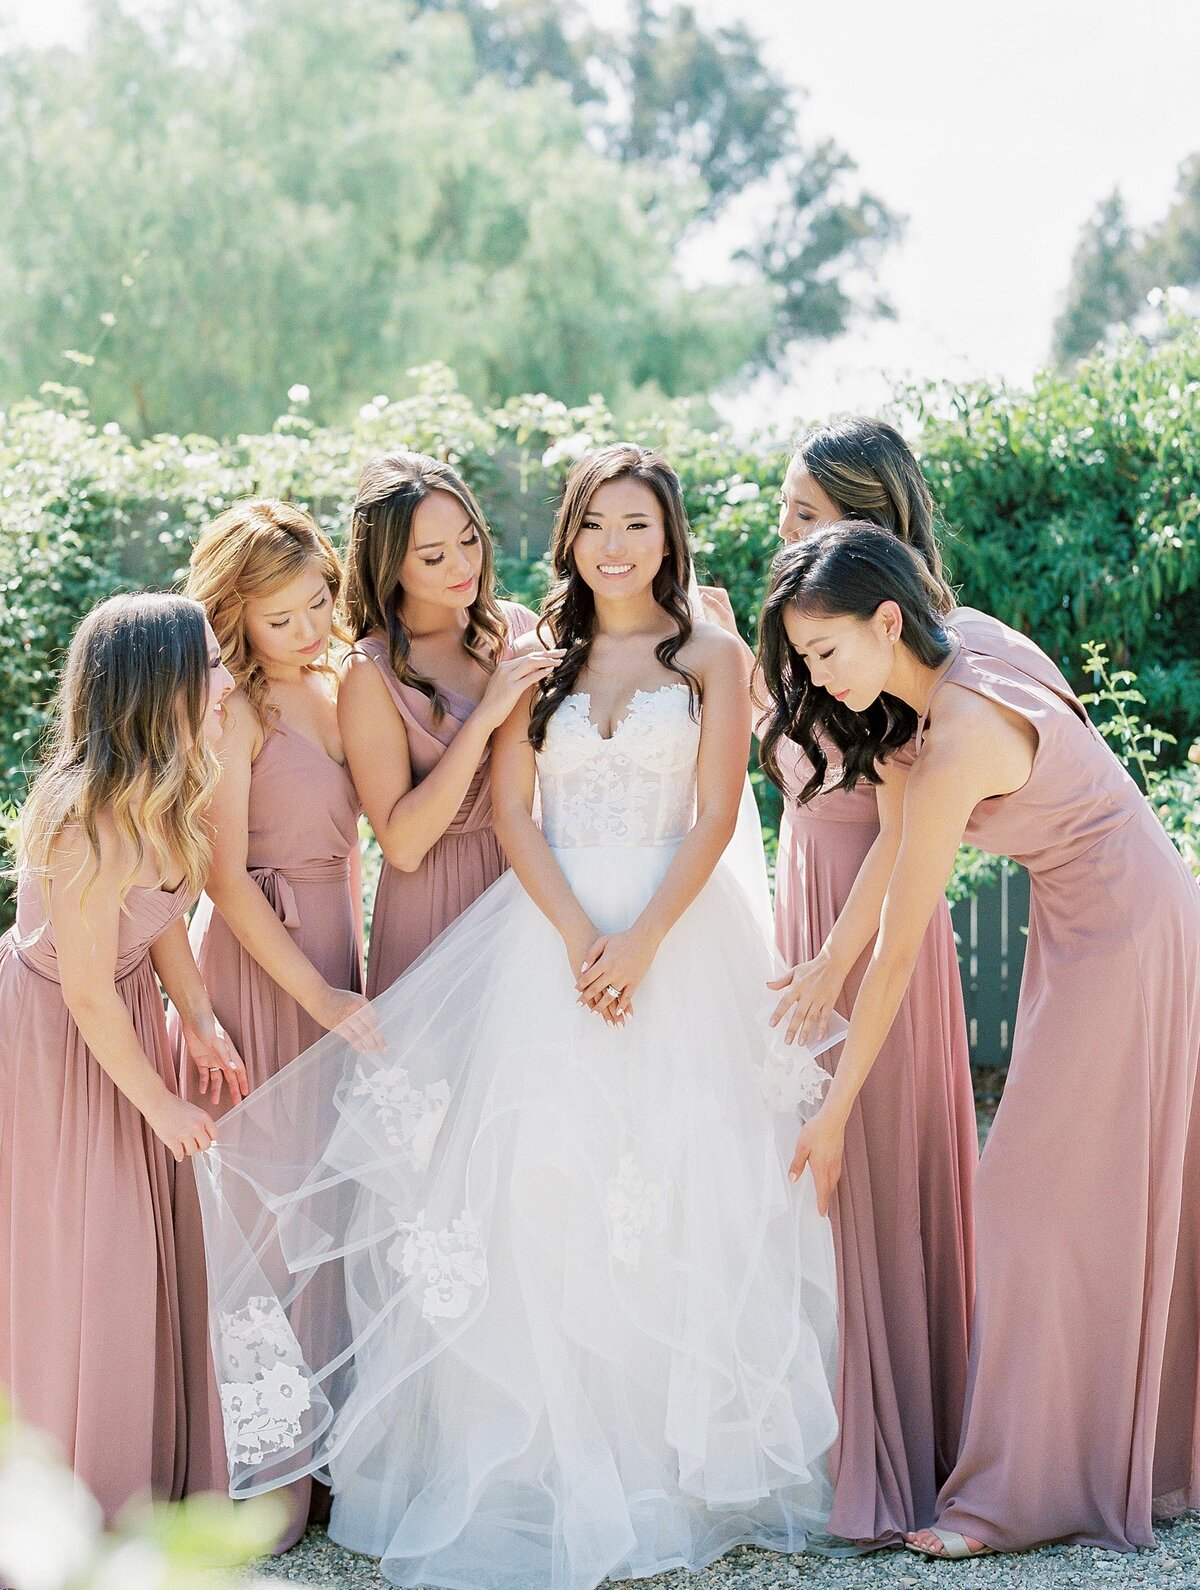 Dani Toscano Photography — Maravilla Gardens Wedding-13